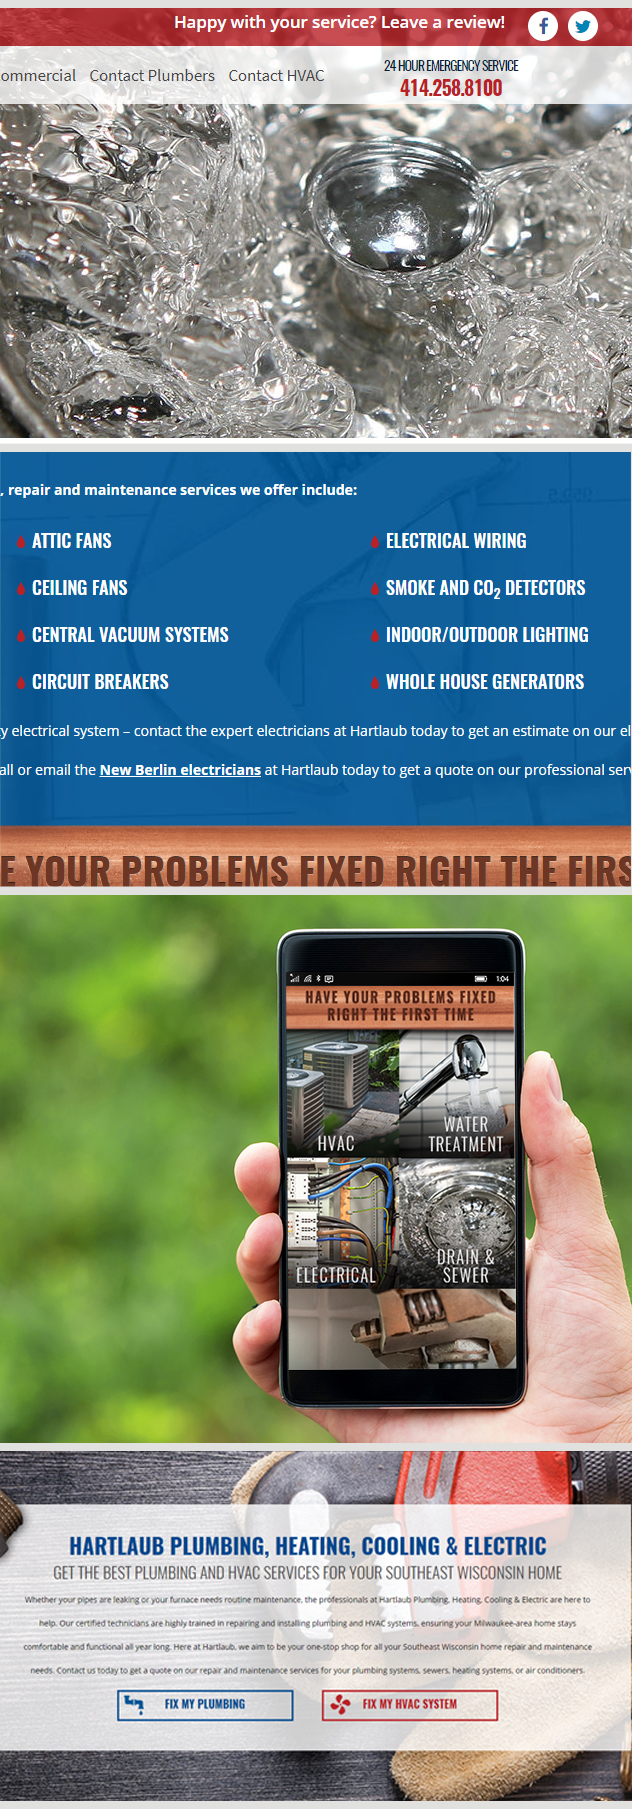 Milwaukee web marketing for Hartlaub Plumbing, Heating, Cooling and Electric Company